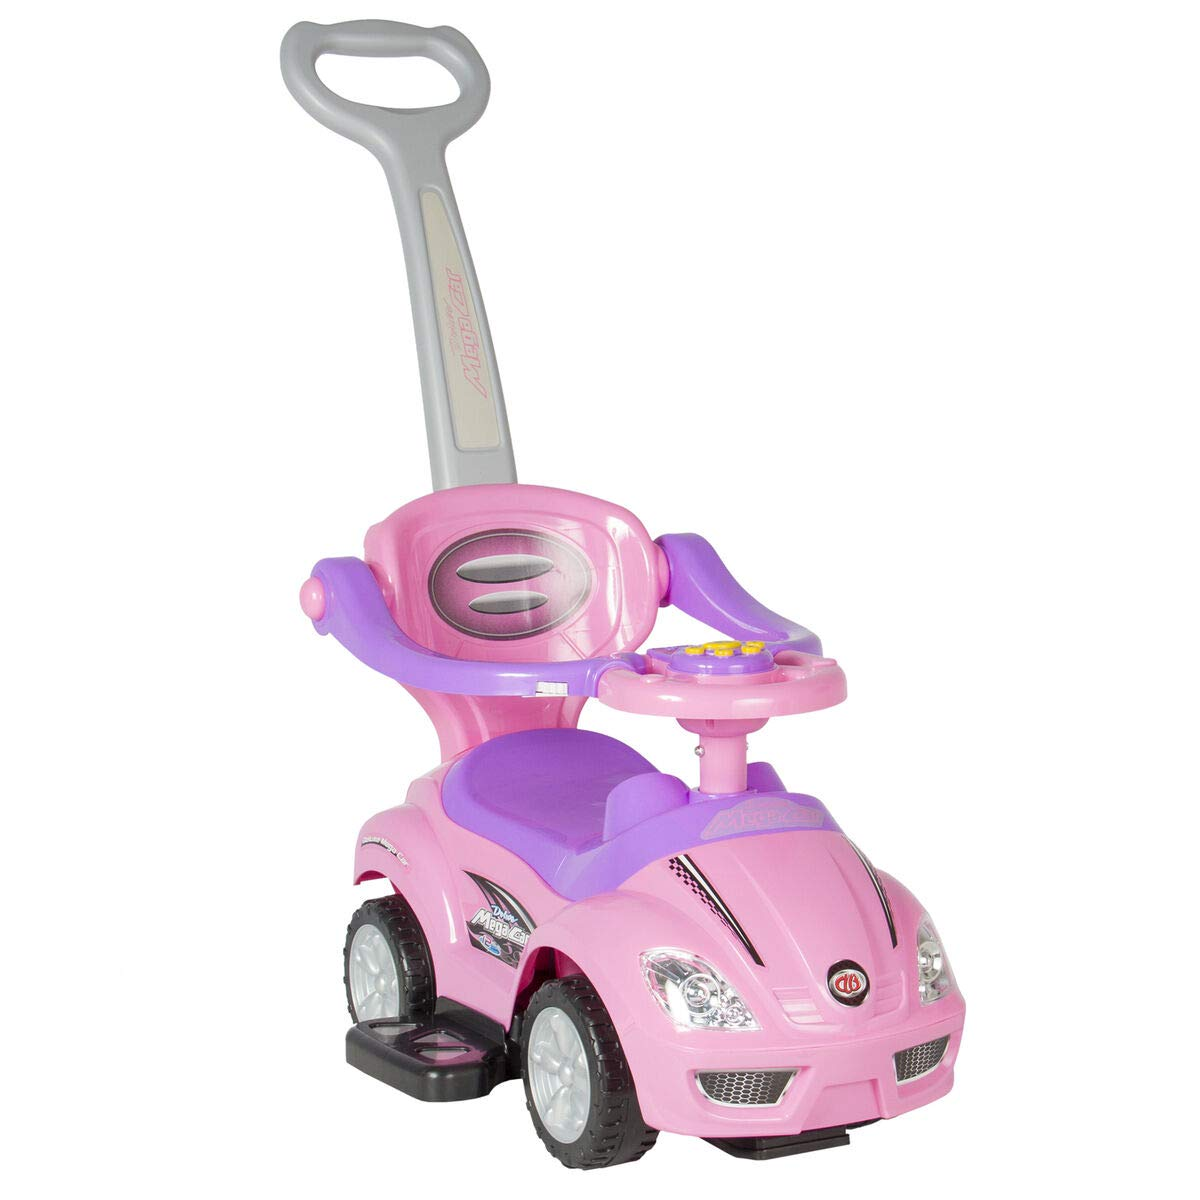 3-in-1 Kids Push Car w/ Handle and Horn, Best Children's Toys 2019